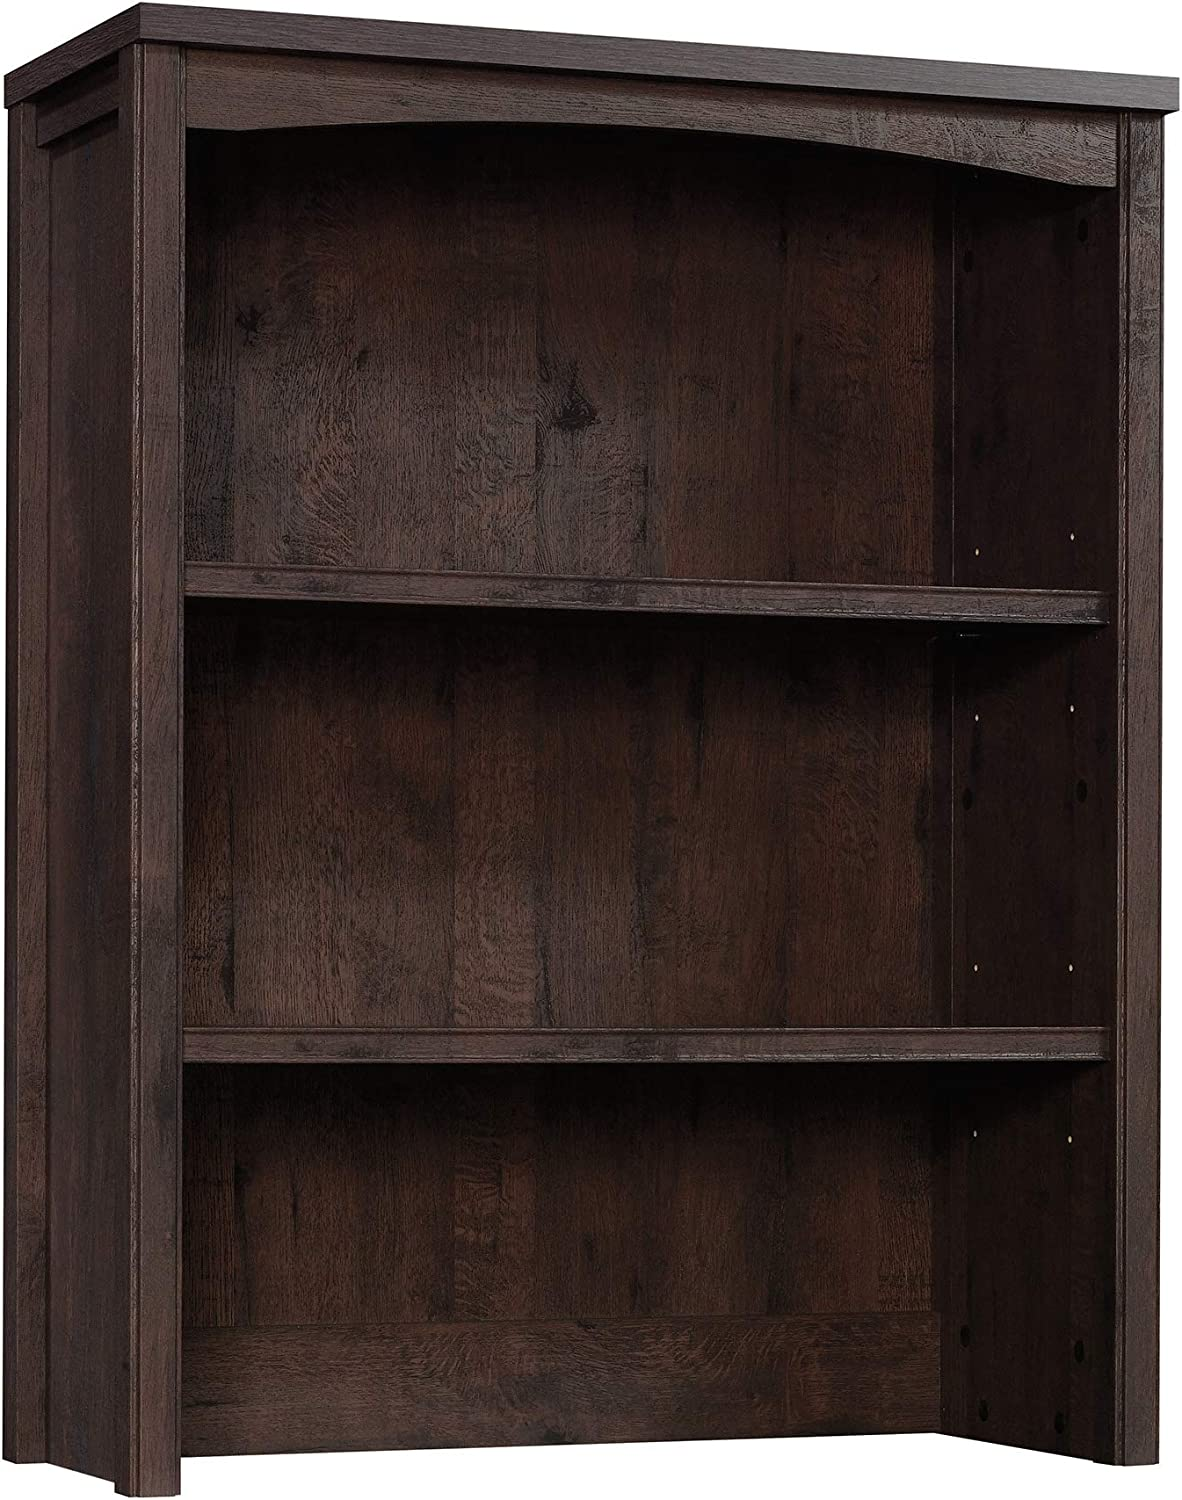 Sauder Costa Library Hutch, L 31.30 x W 13.19 x H 40.09 , Coffee Oak finish